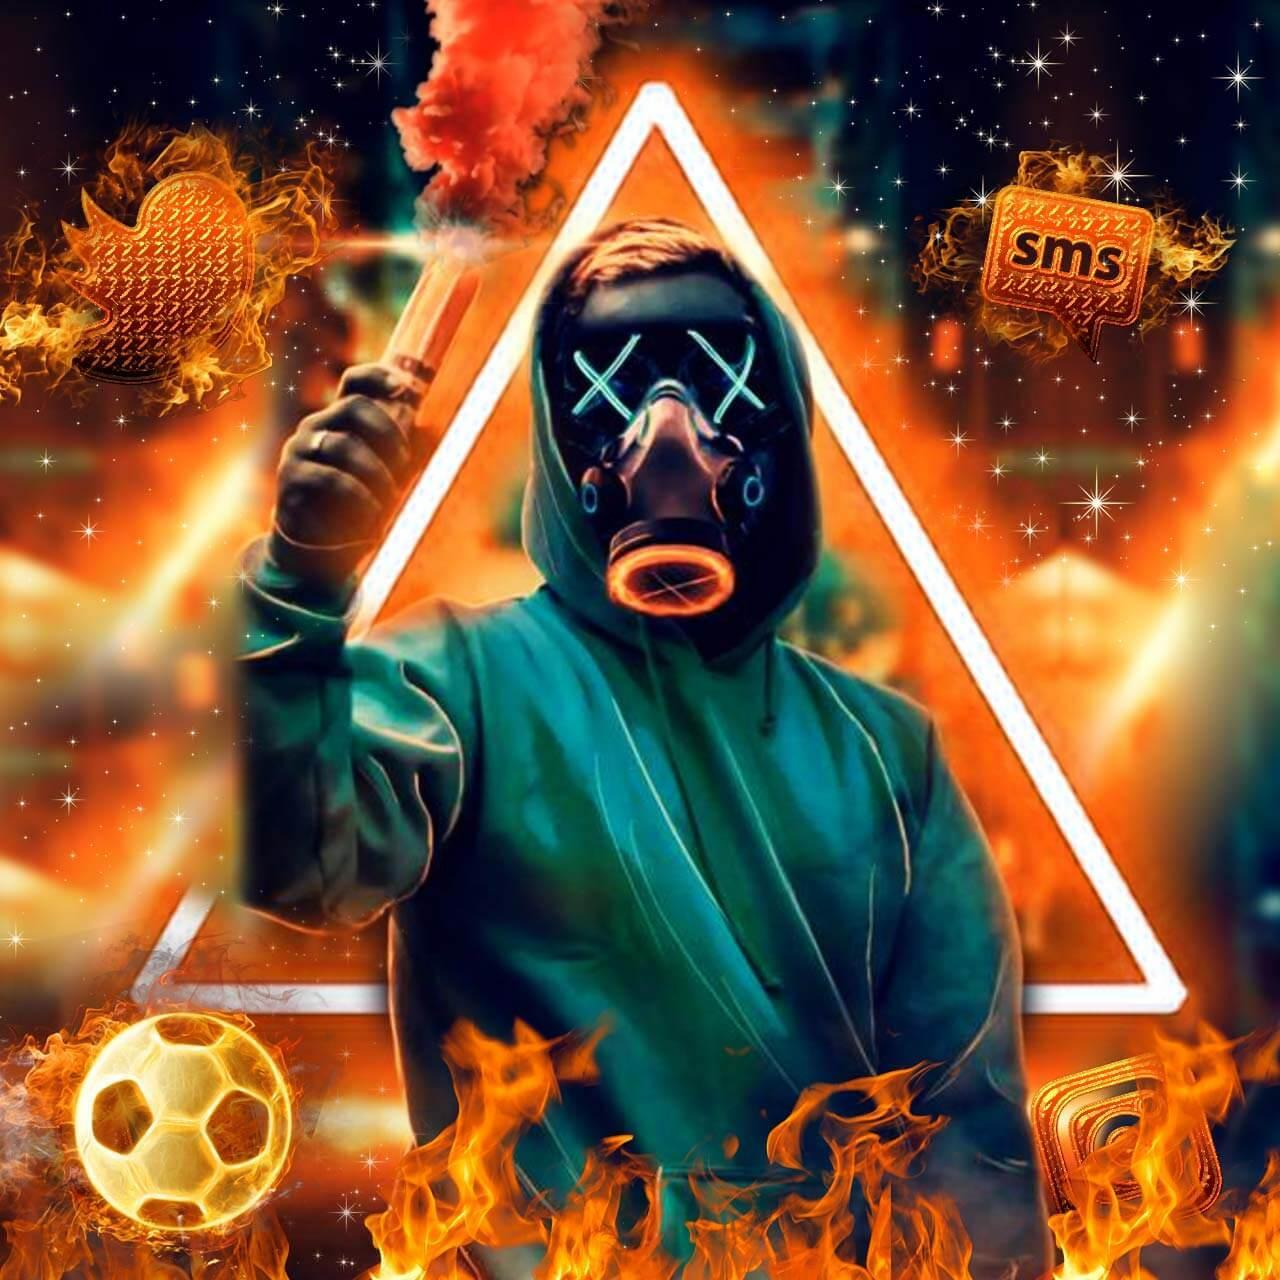 Theme Fire Torch Mask Themes Wallpapers For Android